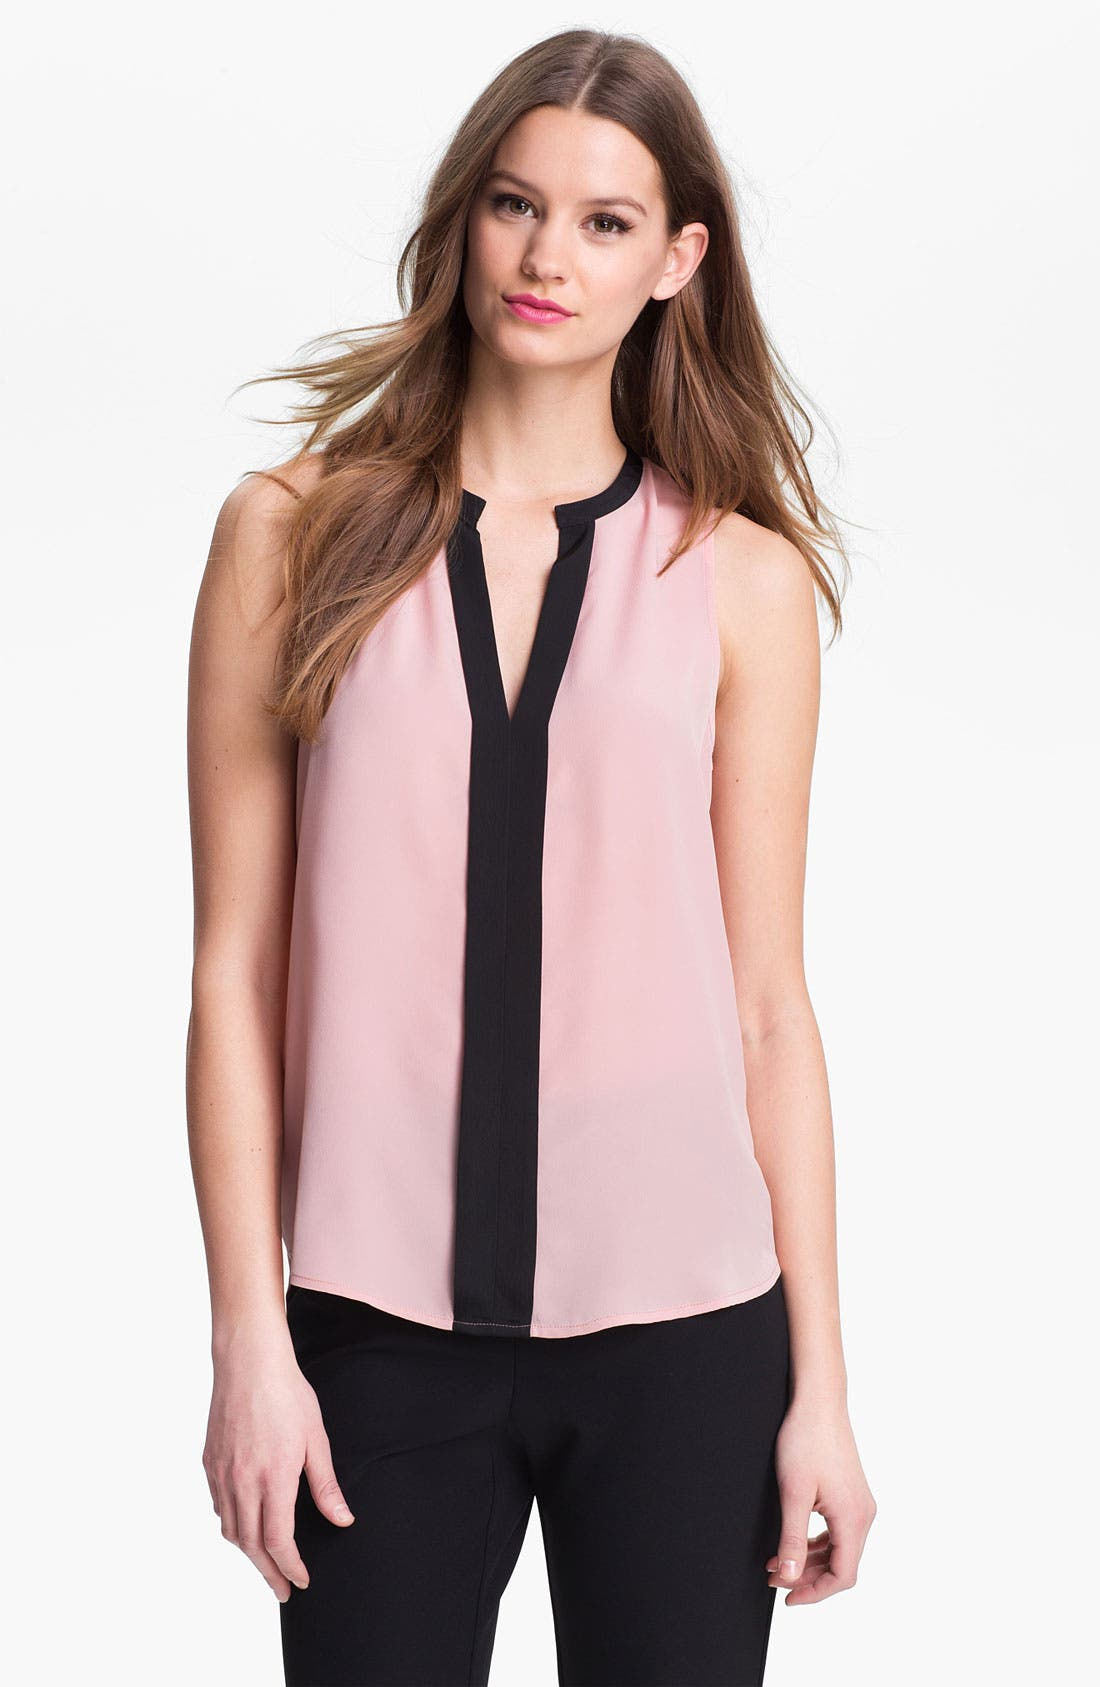 Main Image - Kenneth Cole New York 'Jenny' Sleeveless Top